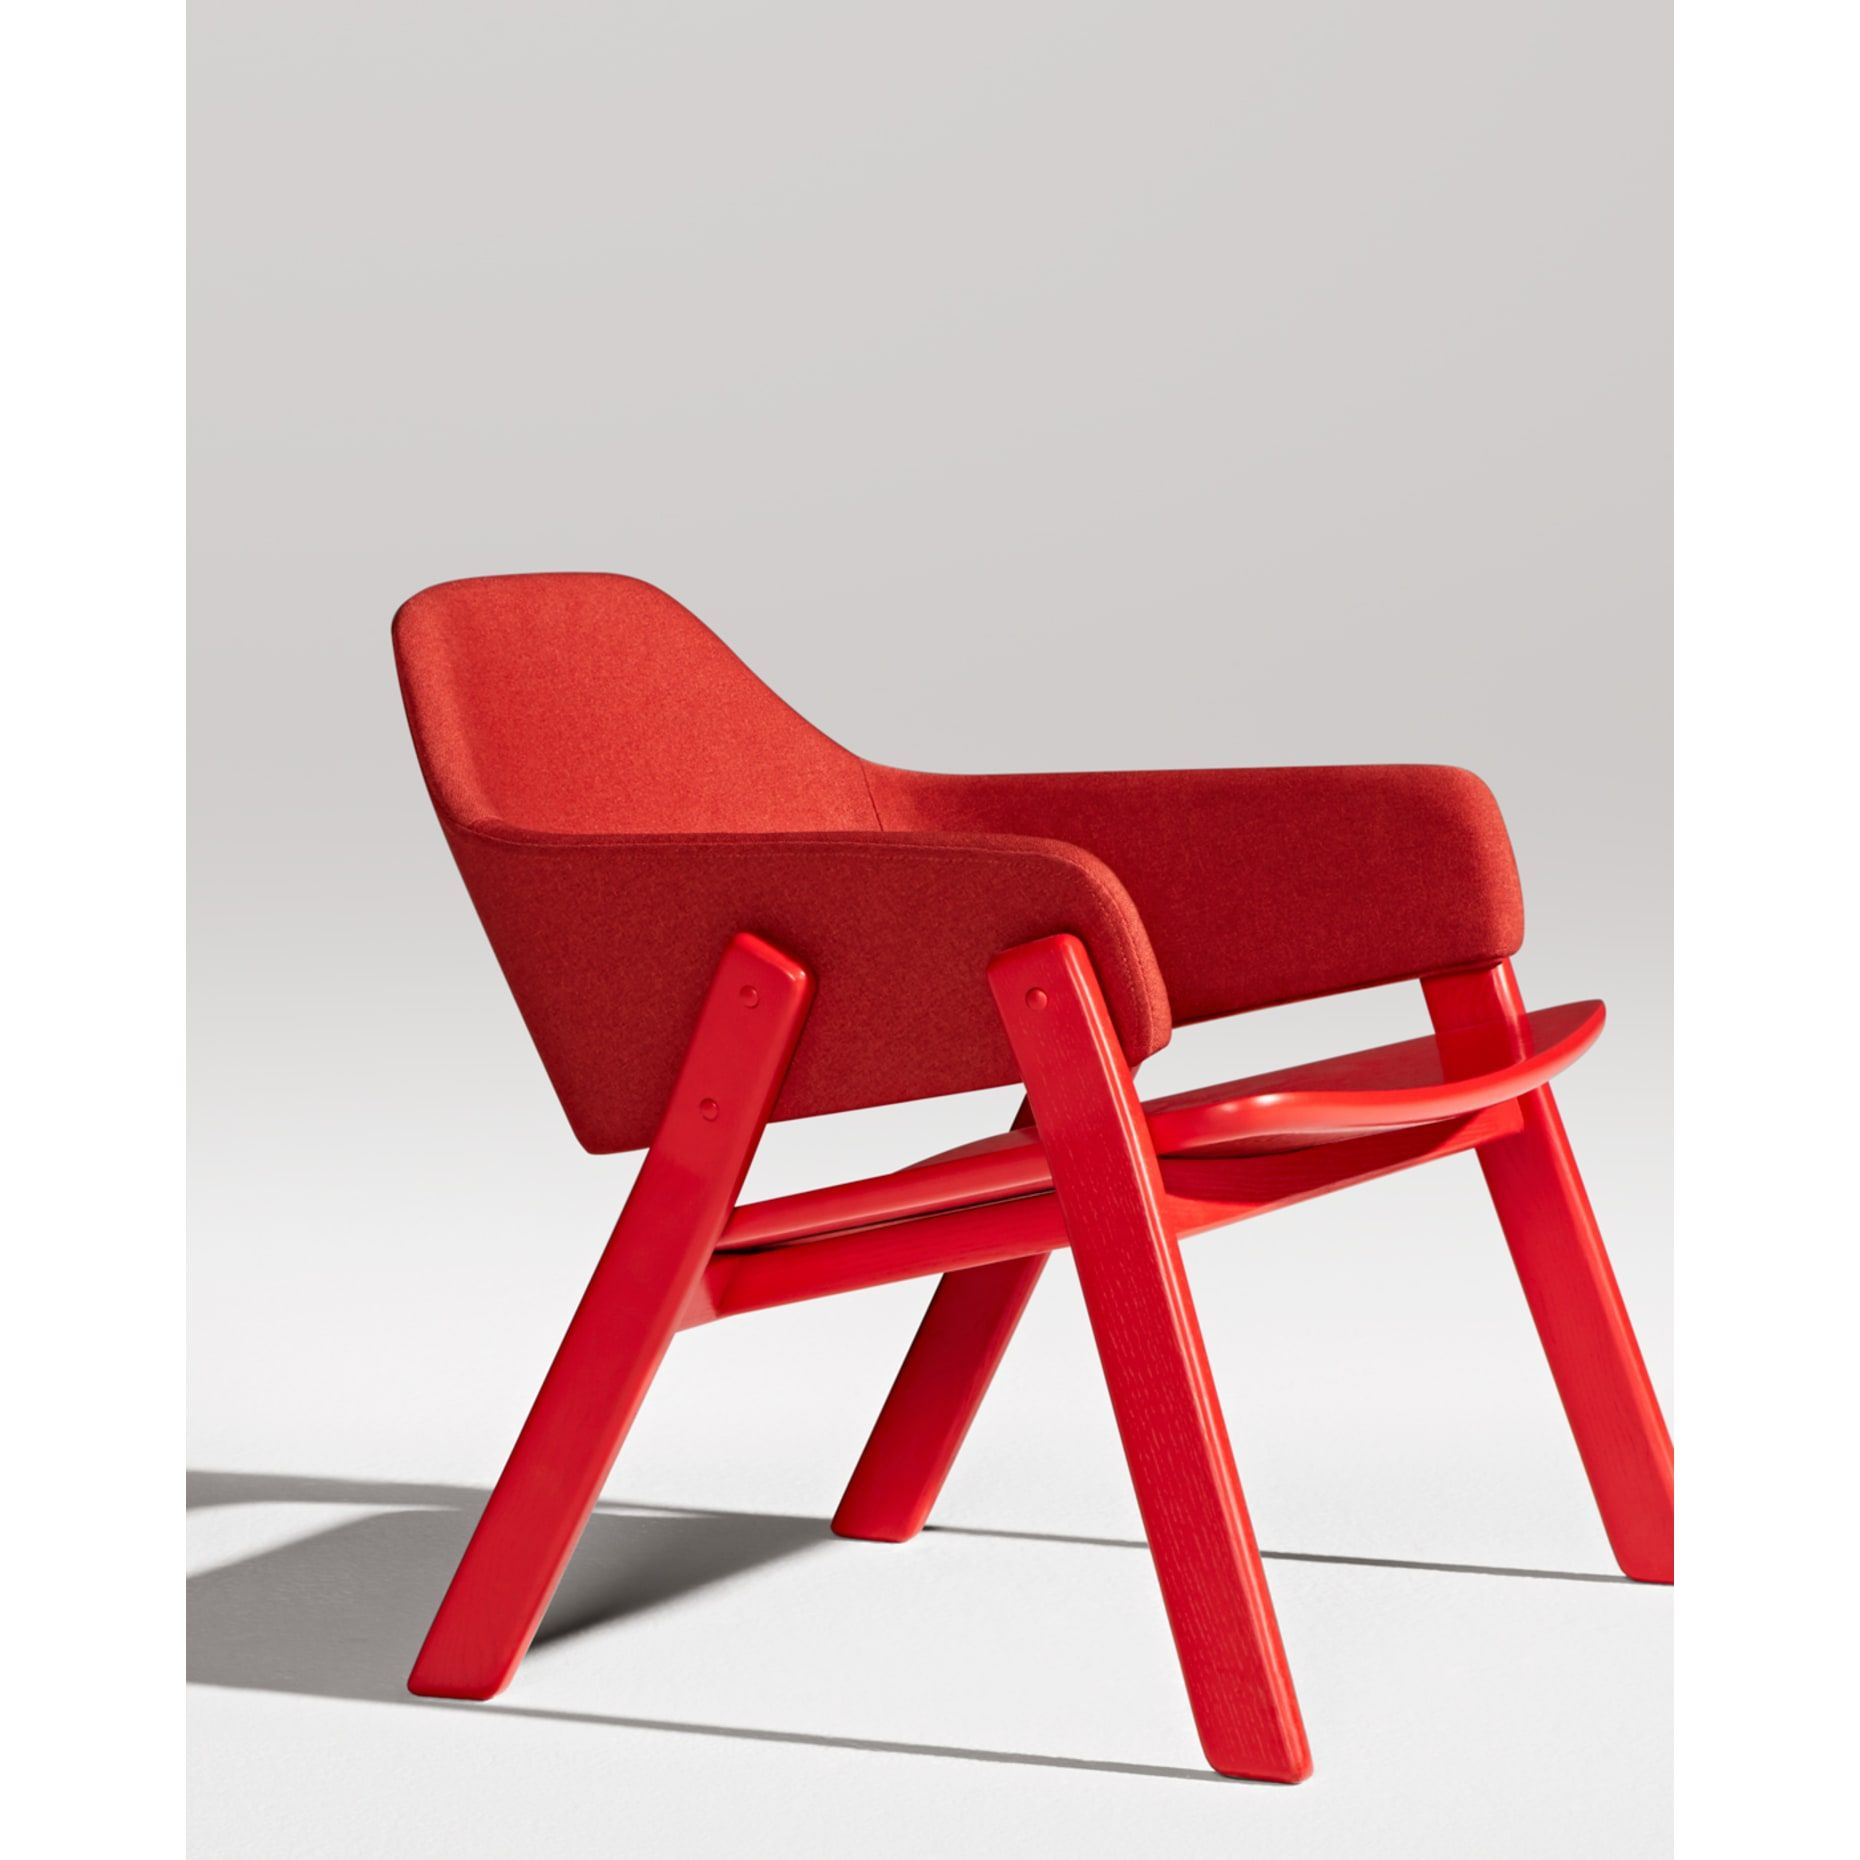 Awe Inspiring Affordable Modern Red Lounge Chair Blu Dot Project Bralicious Painted Fabric Chair Ideas Braliciousco